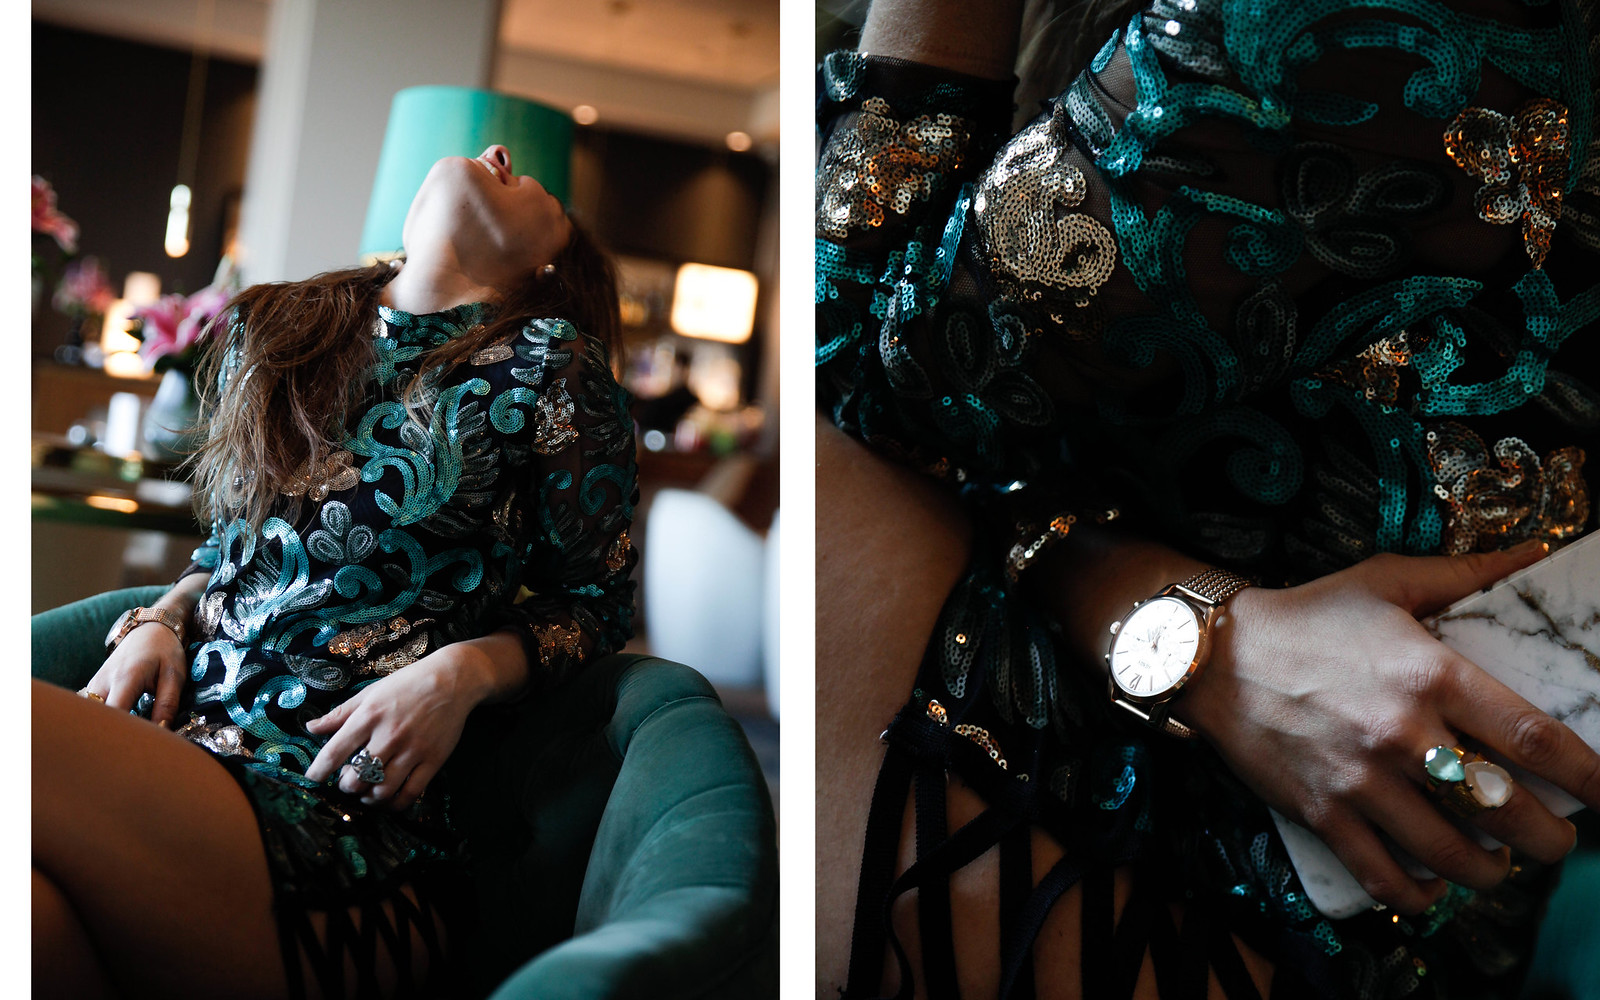 03_Green_sequins_dress_outfit_the_guest_girl_theguestgirl_laura_santolaria_fashion_blogger_danity_paris_influencer_barcelona